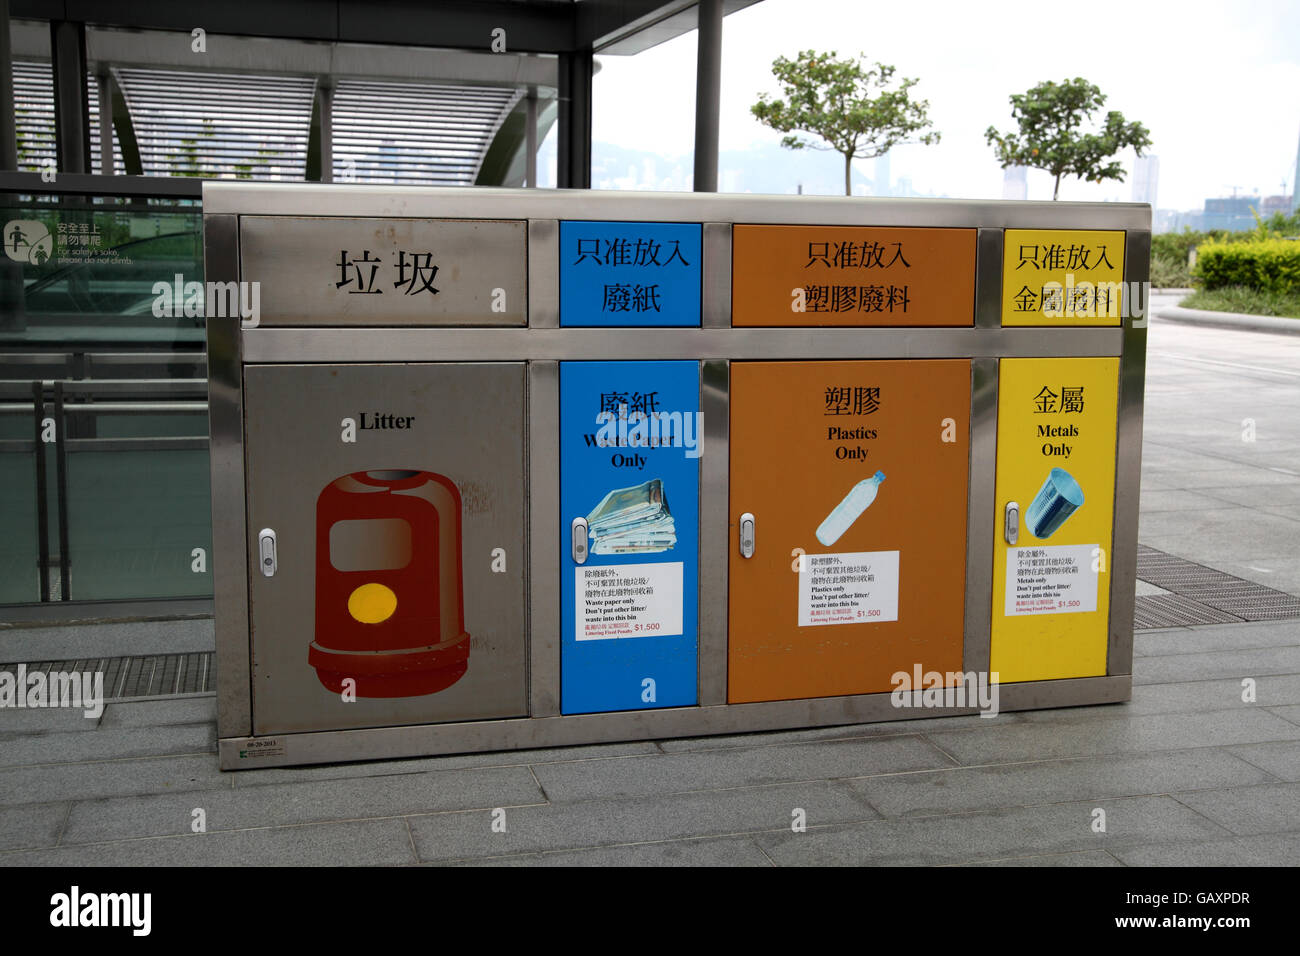 A nicely designed garbage can with different disposal spaces for general litter, waste paper, plastics and metal. - Stock Image